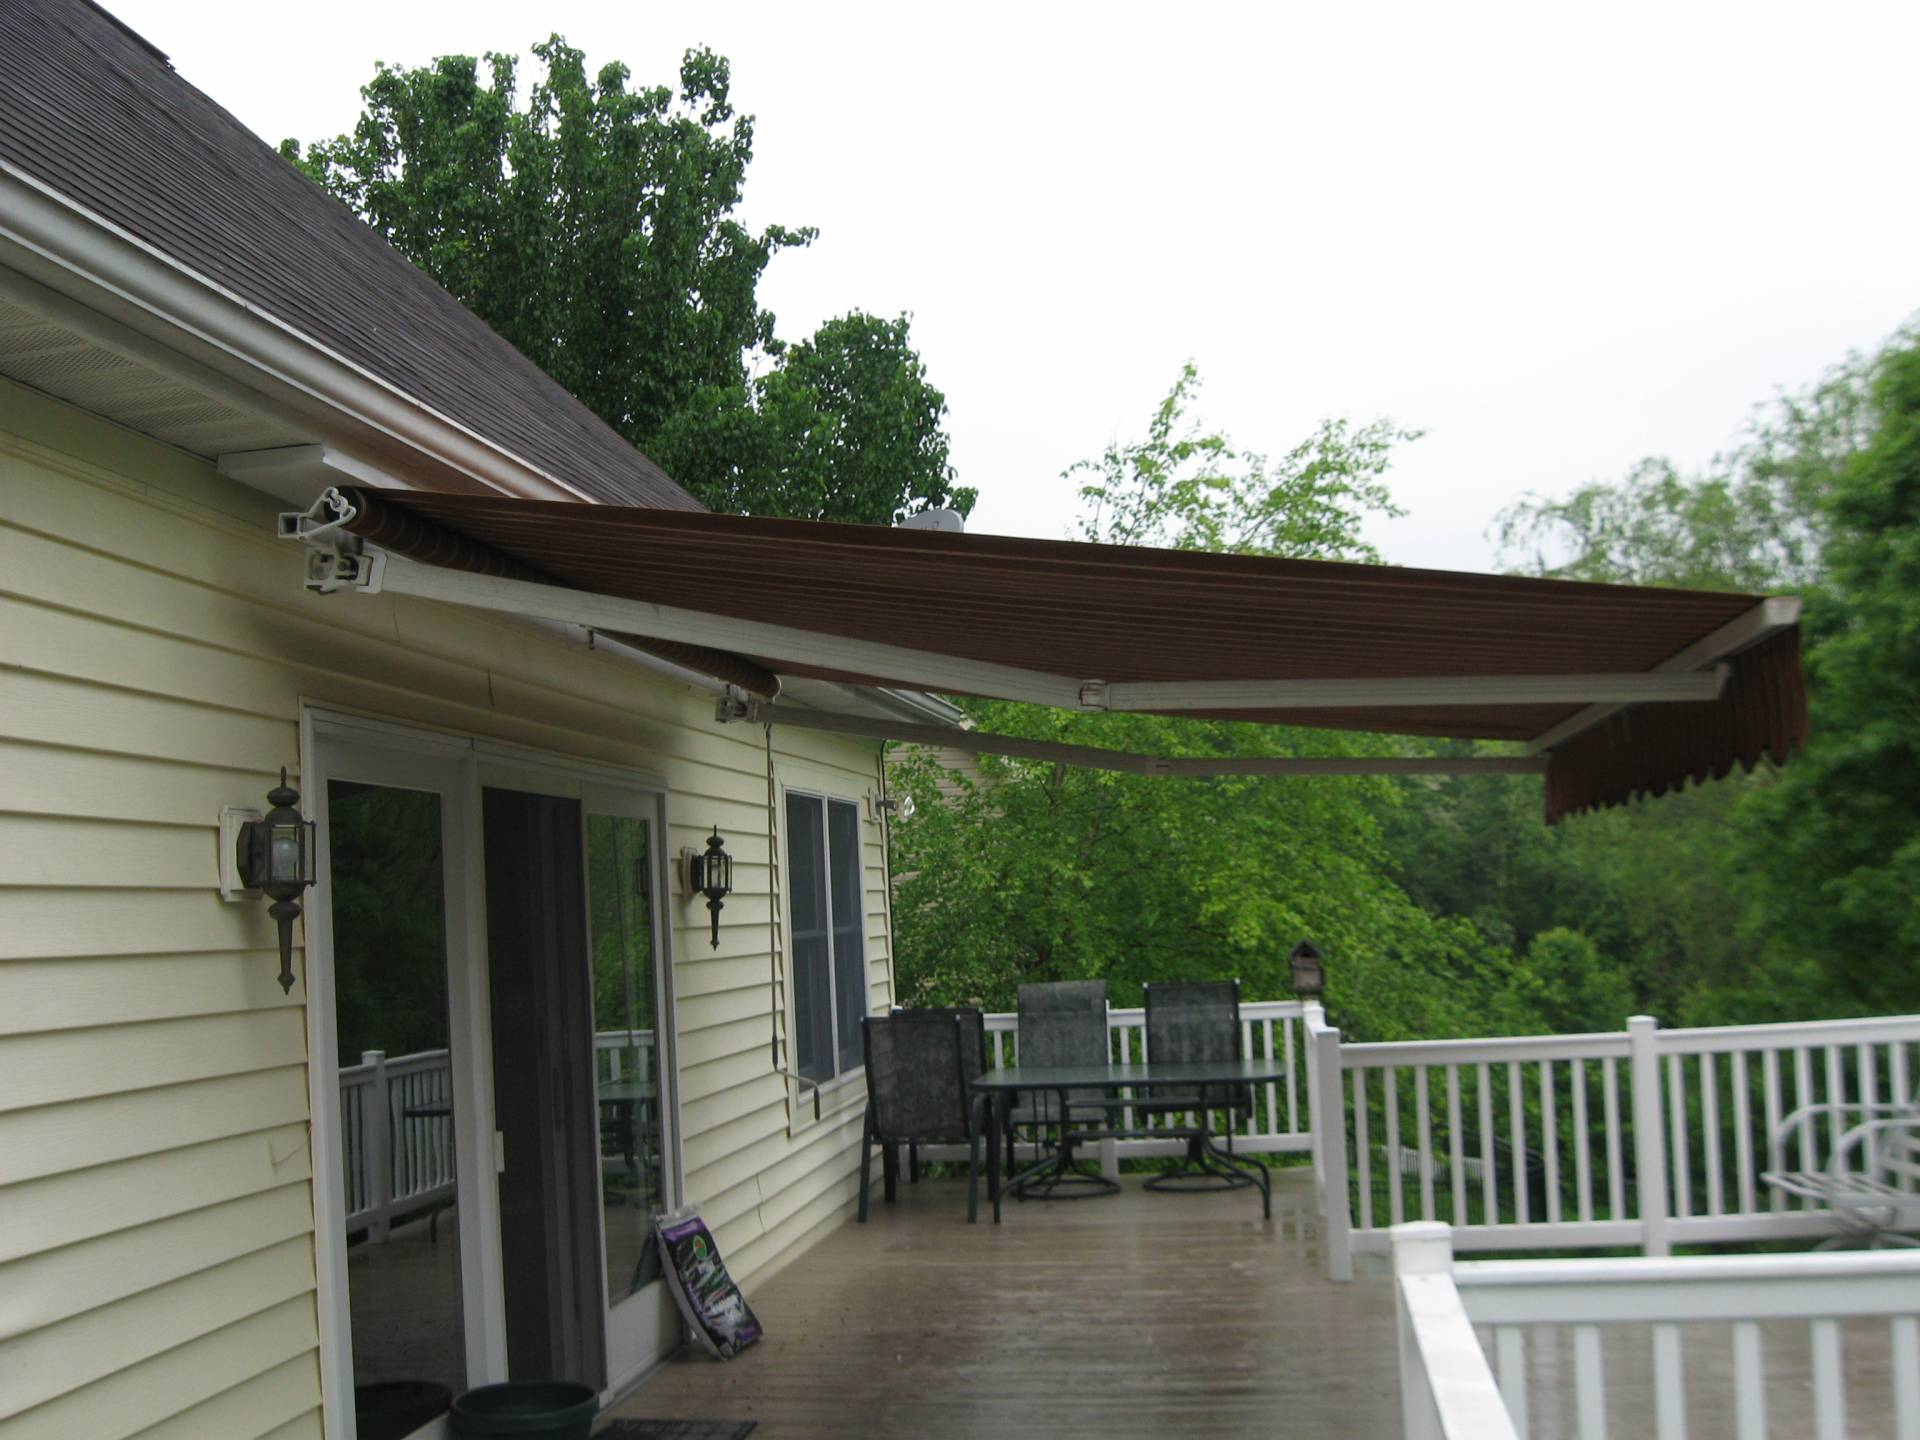 design doors decks door deck images for awning ideas plans patio photo wood distinguished awnings